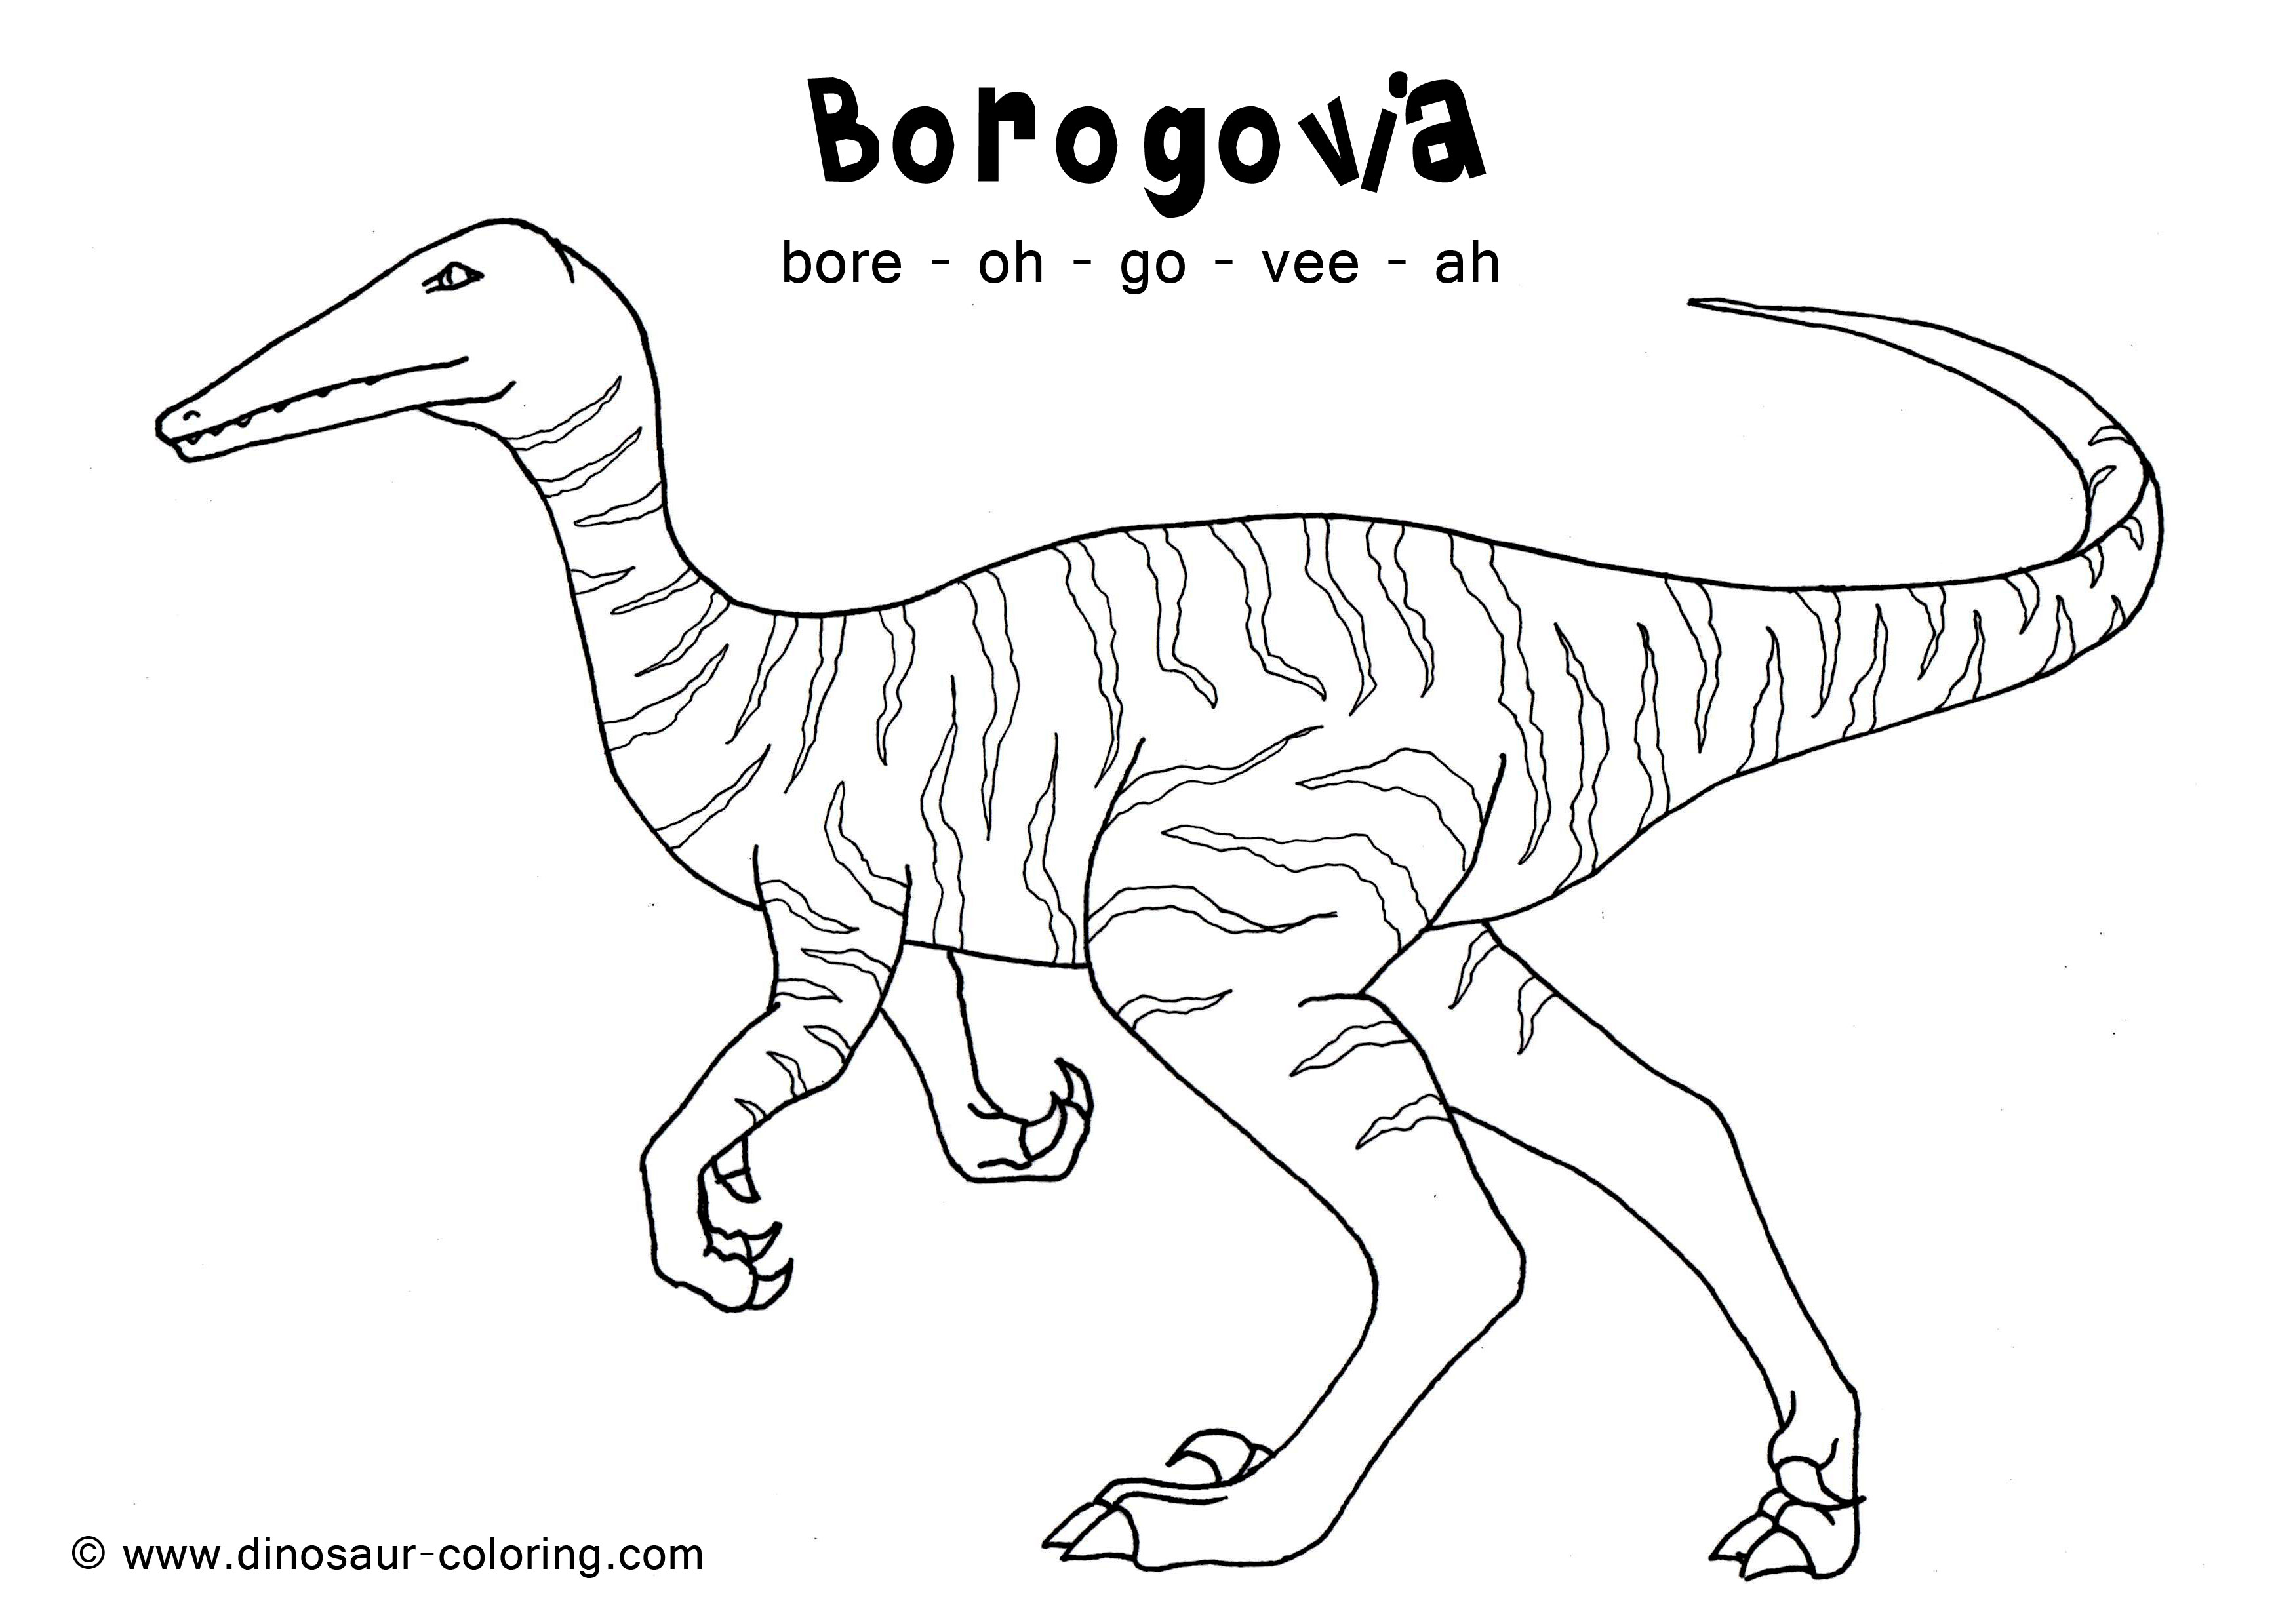 herbivore dinosaur coloring pages - photo#31